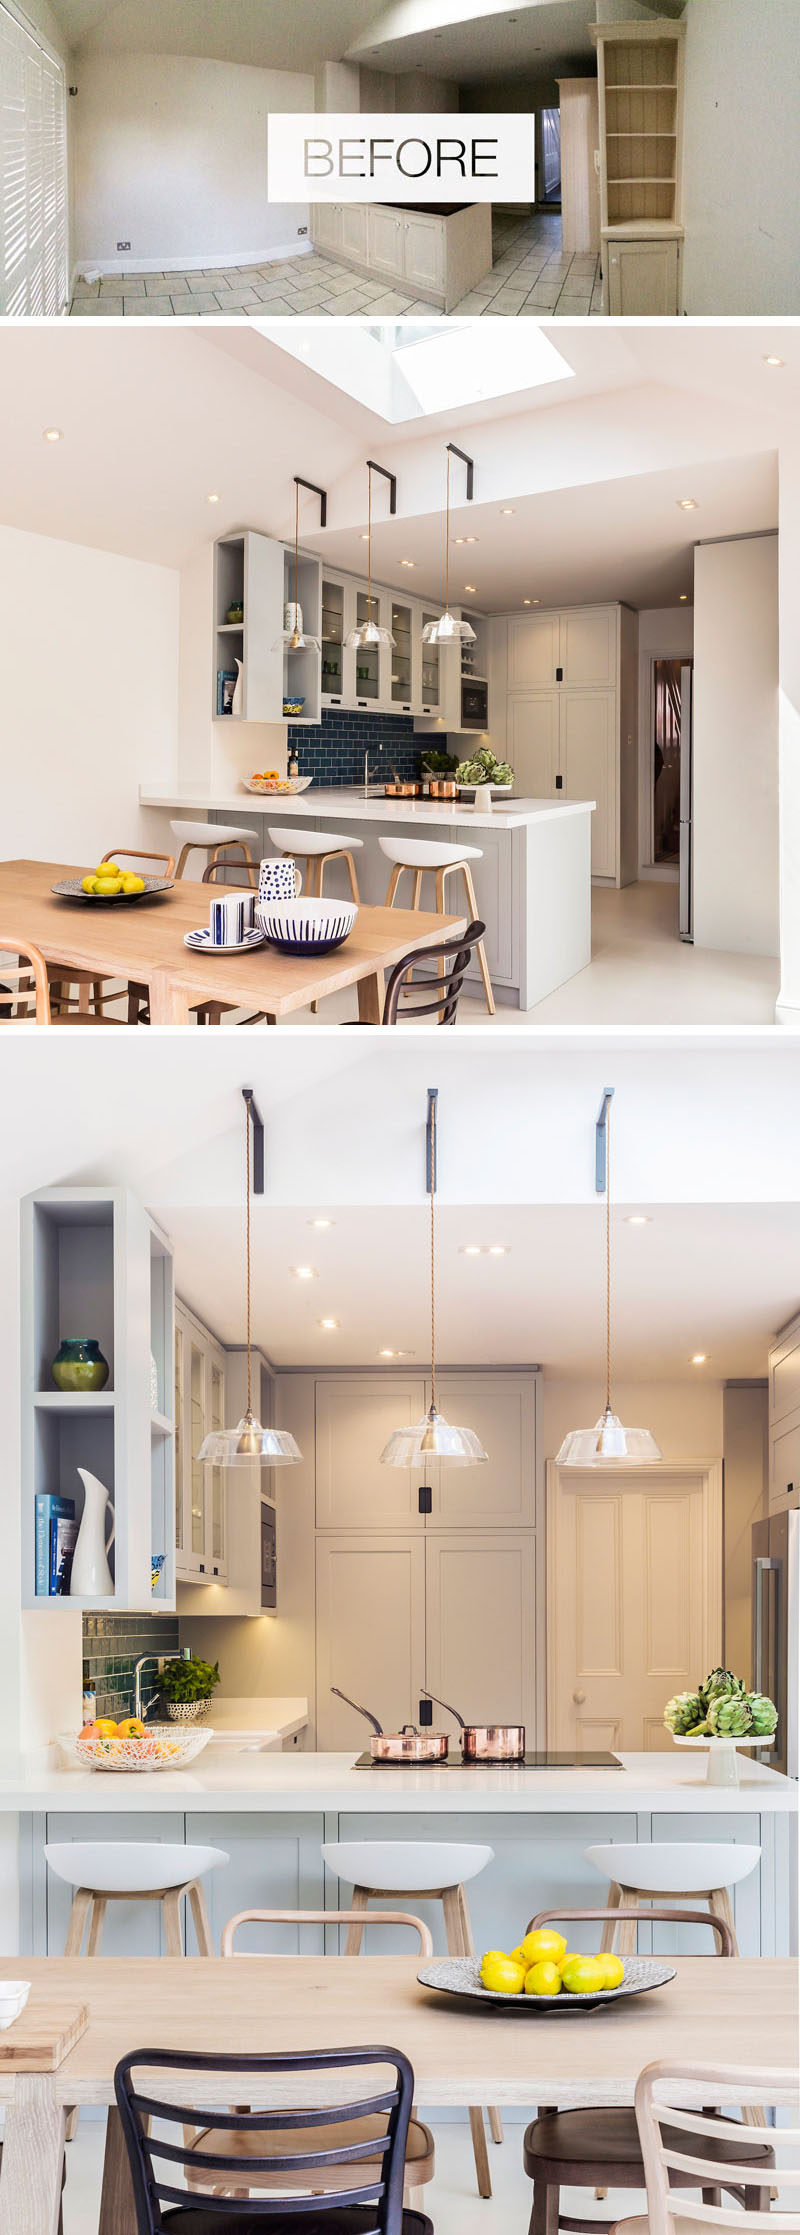 To add additional light to this renovated dining and kitchen space, the designers fabricated bespoke metal brackets from which to suspend 3 glass pendant lights which hover over the counter. #RenovatedKitchen #DiningRoom